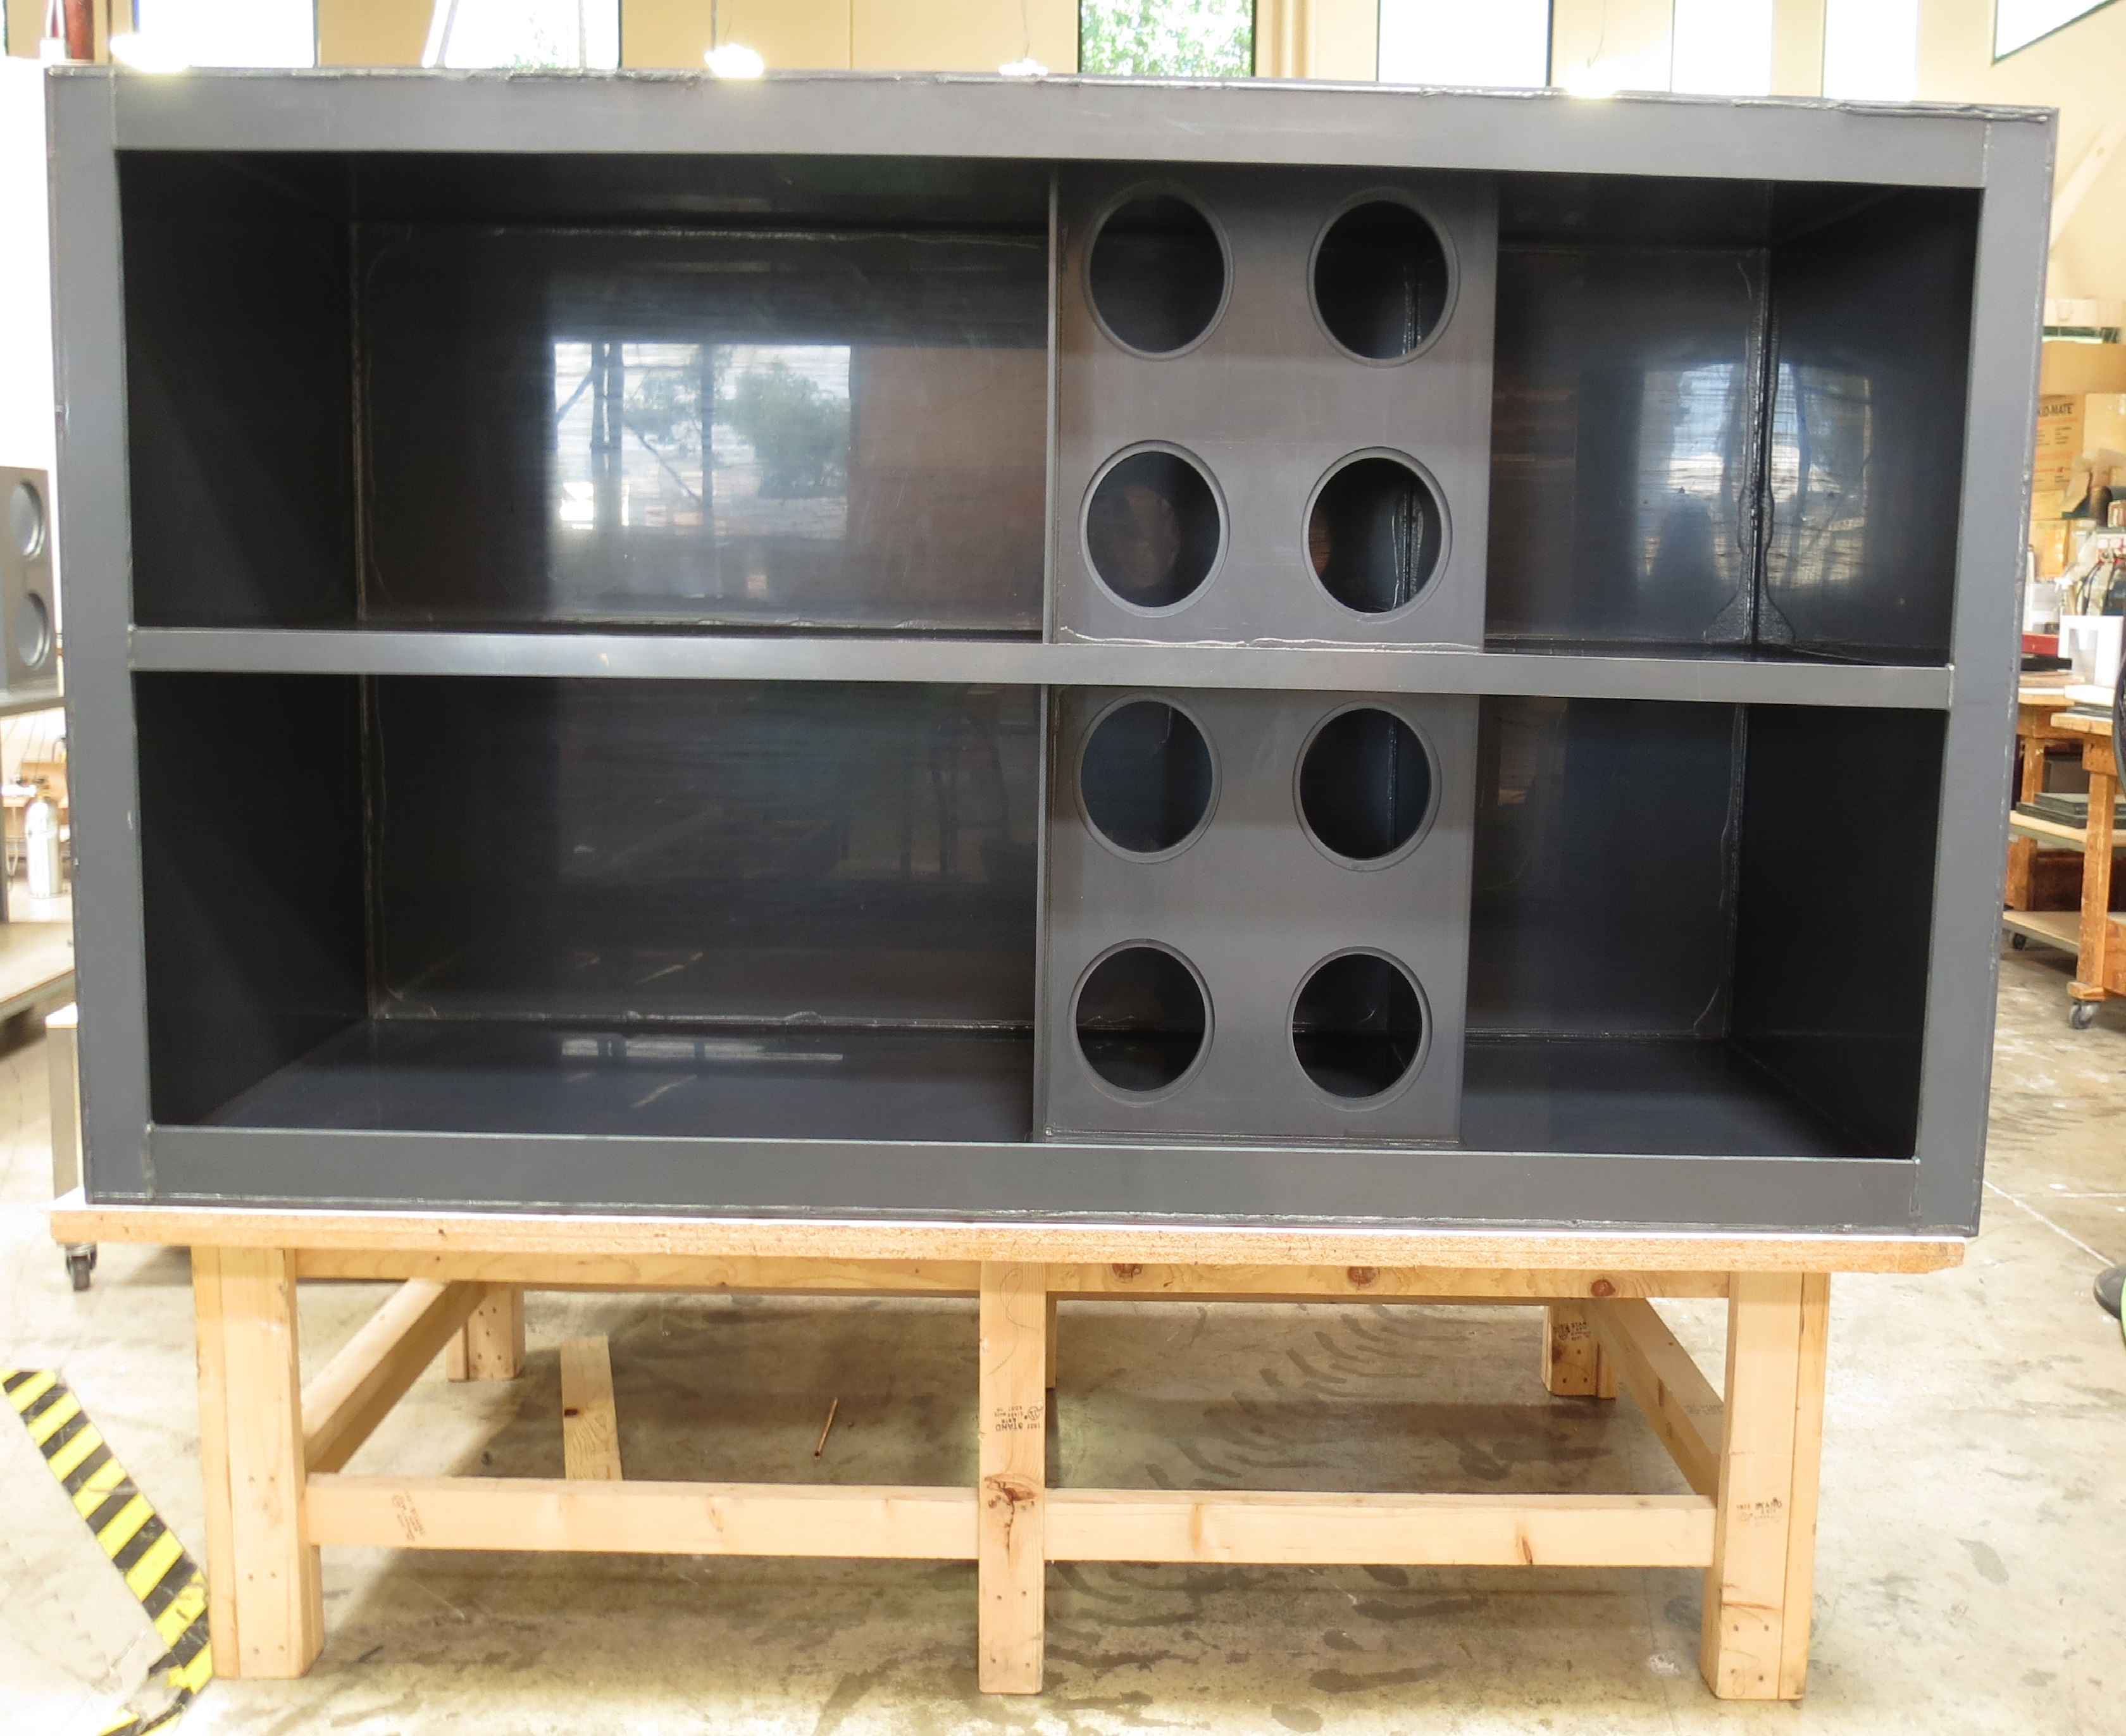 PVC Tanks and Sumps